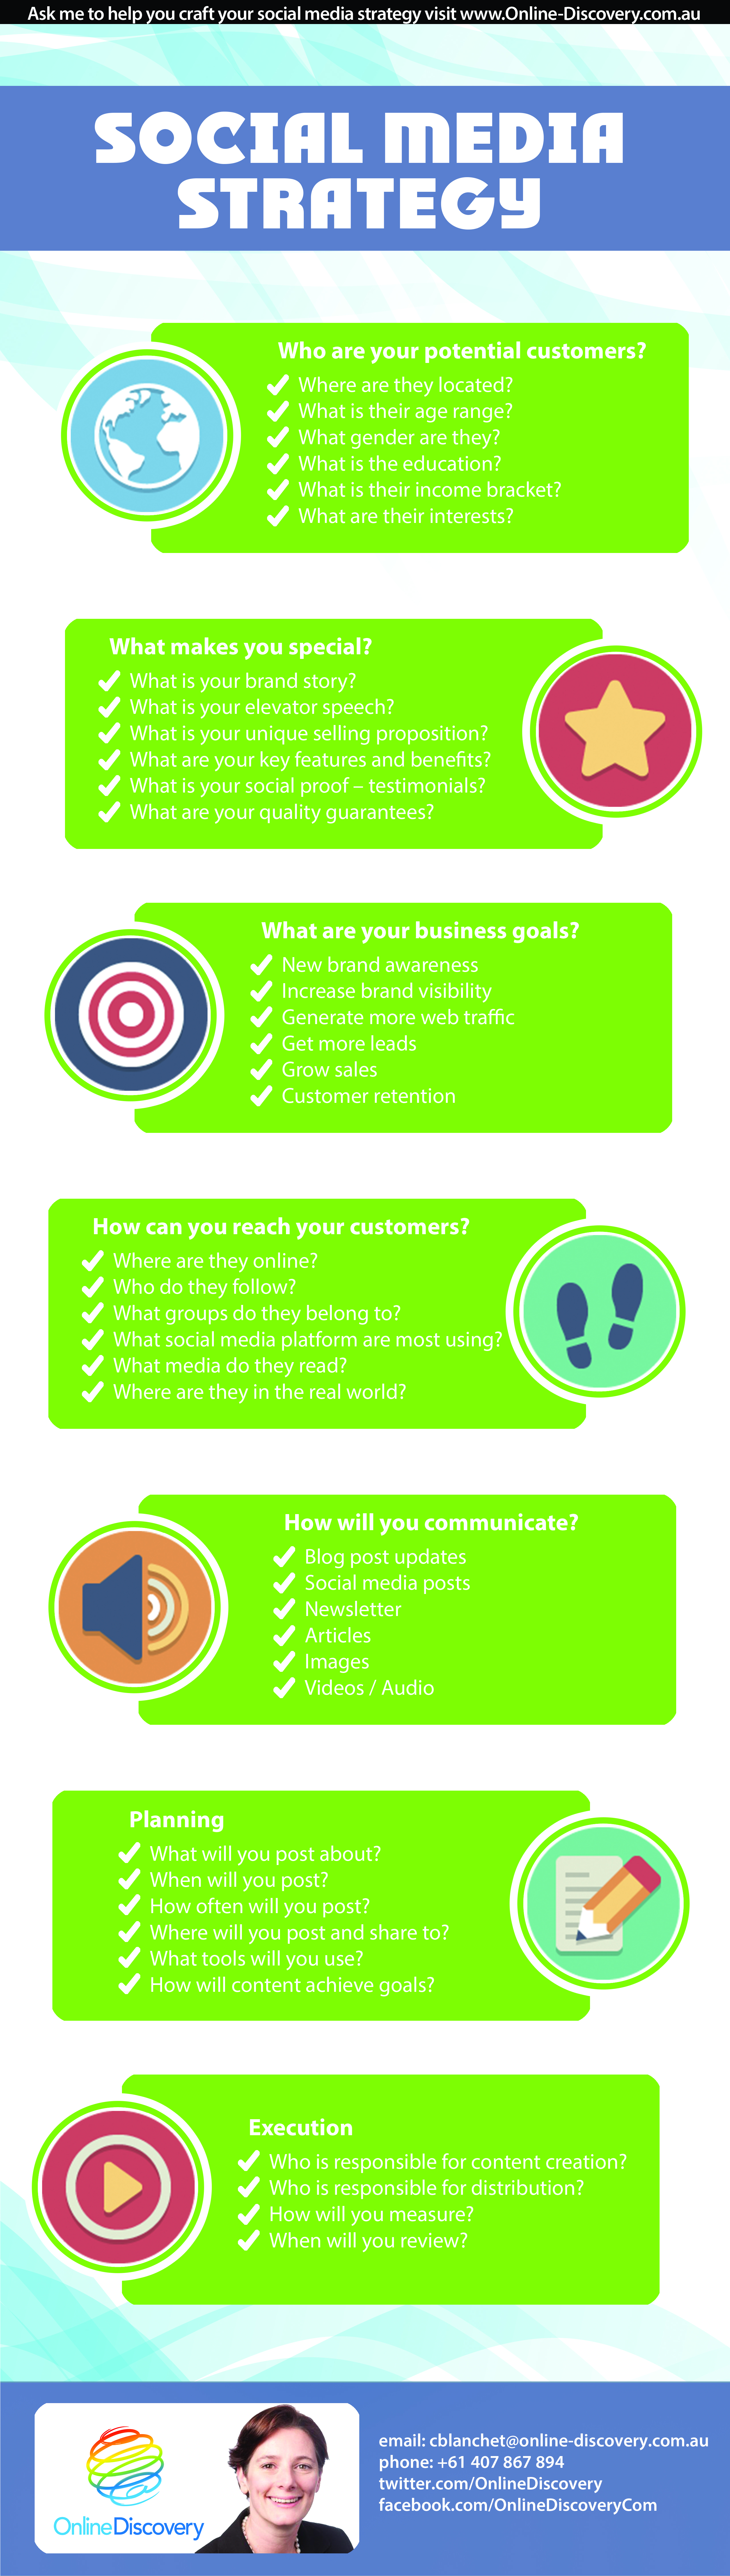 InfoGraphicSocial-Media-Strategy - online-discovery